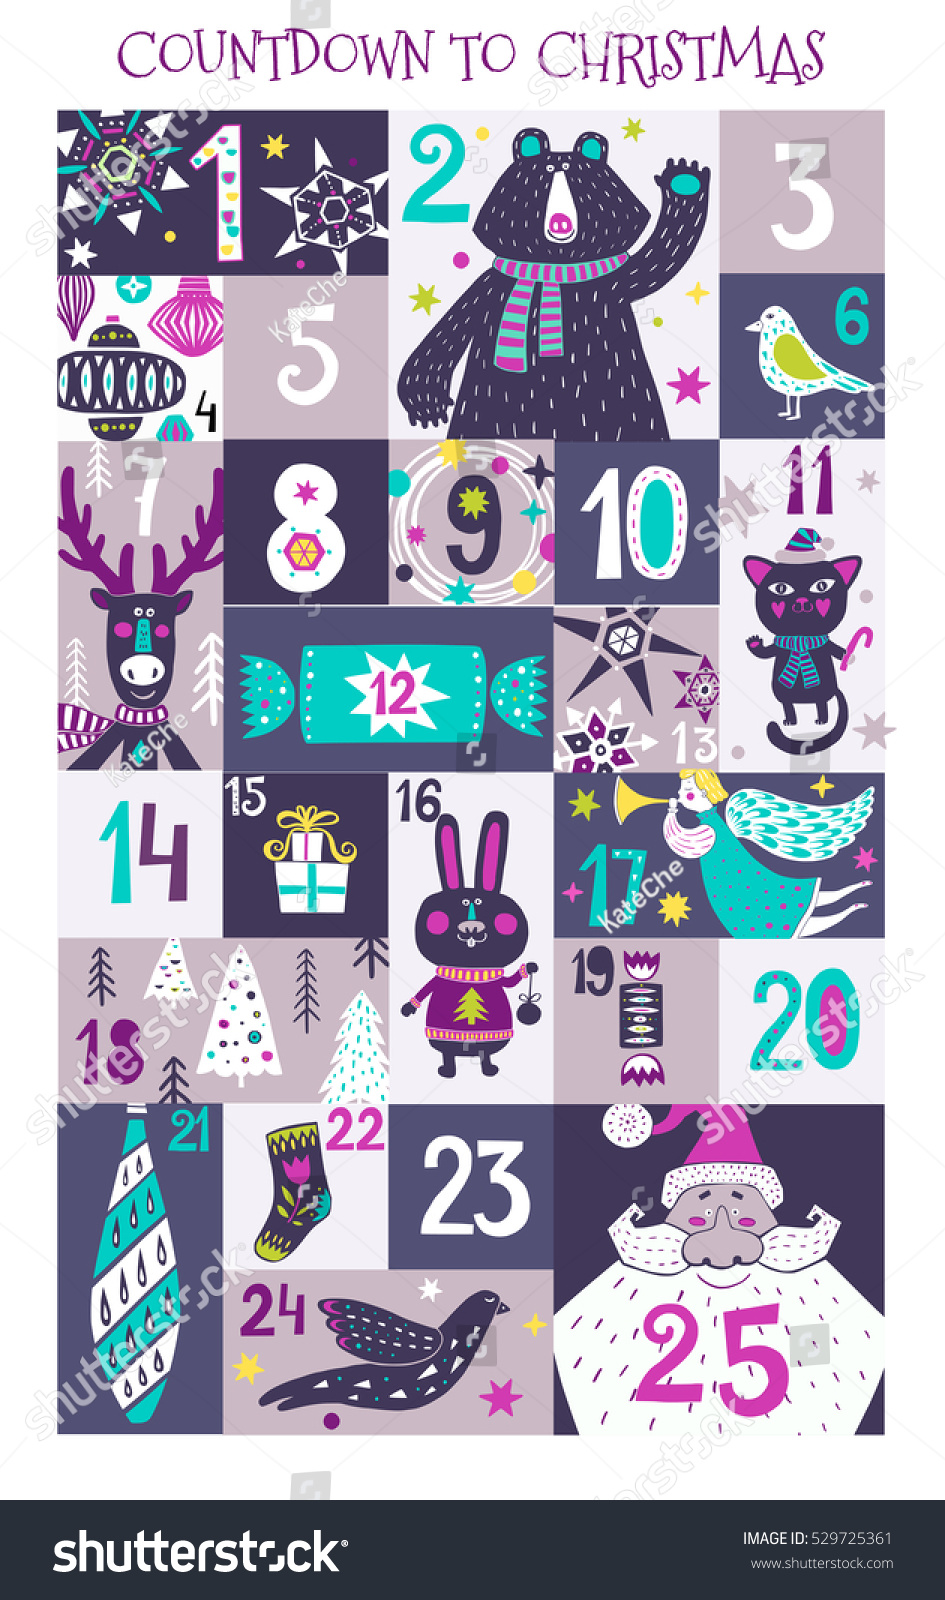 Christmas Calendar Illustration : Christmas advent calendar creative hand drawn stock vector